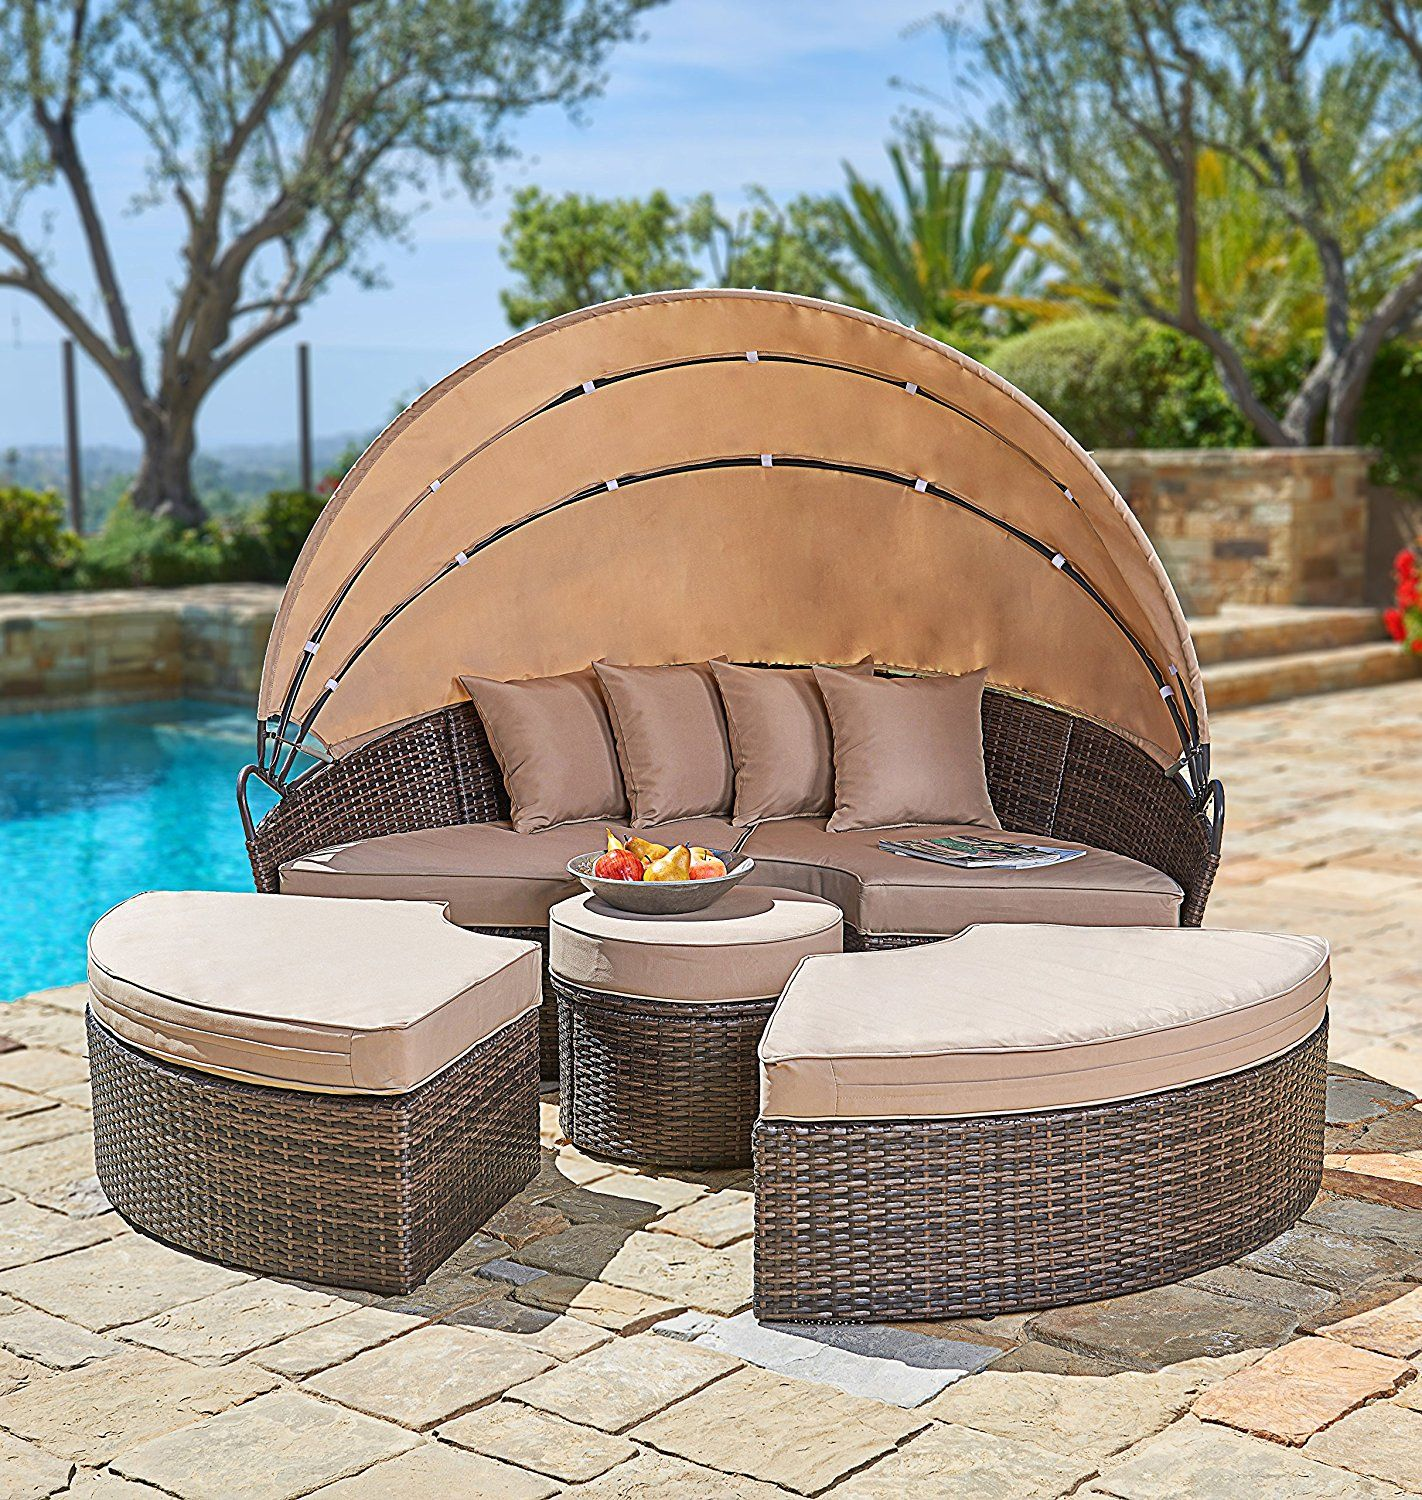 outdoor furniture wicker. Contemporary Wicker Patio Decor With Suncrown Outdoor Furniture Wicker Daybed With Retractable  Canopy  Clamshell Seating Separates To Inside